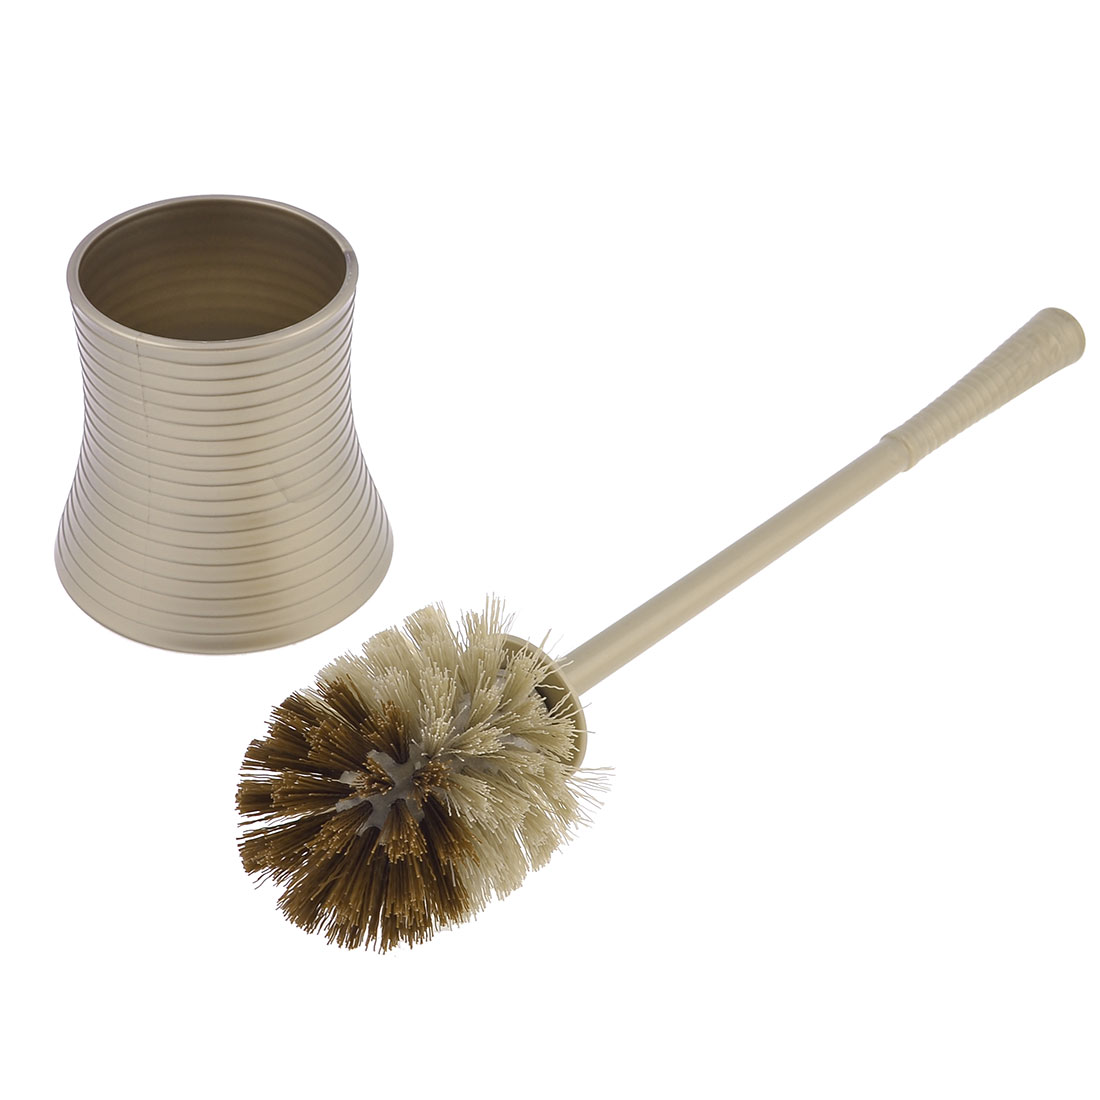 Khaki Plastic 30cm Handle Round Bristle Head Pot Toilet Cleaning Scrubbing Brush